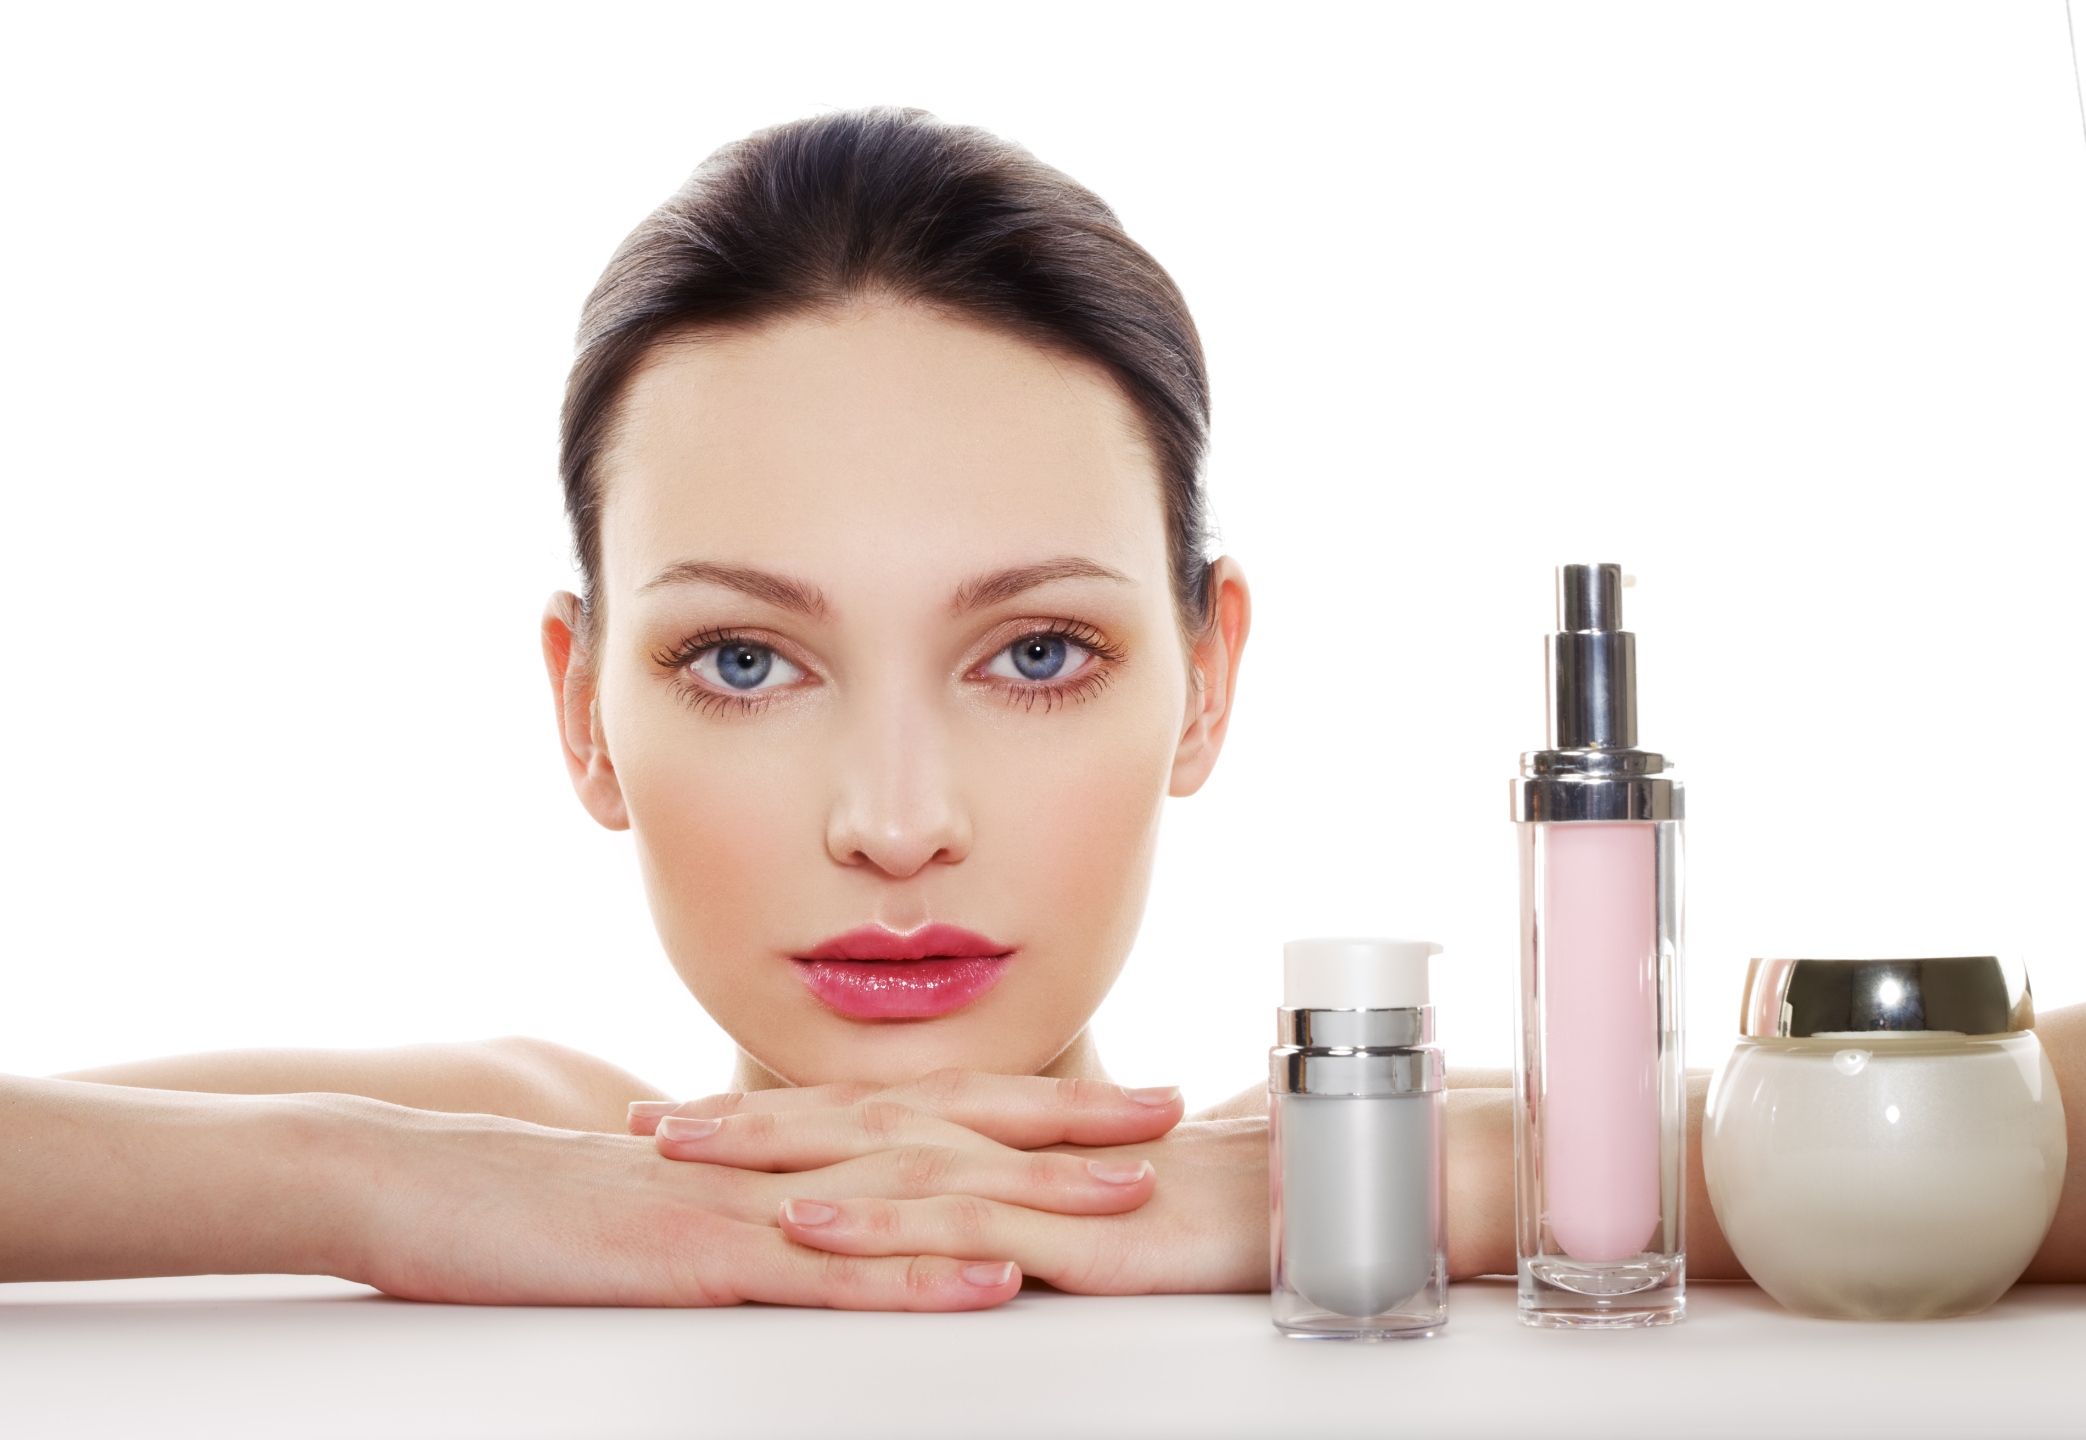 How to Take Care of the Face Skin - Top Definitive Tips